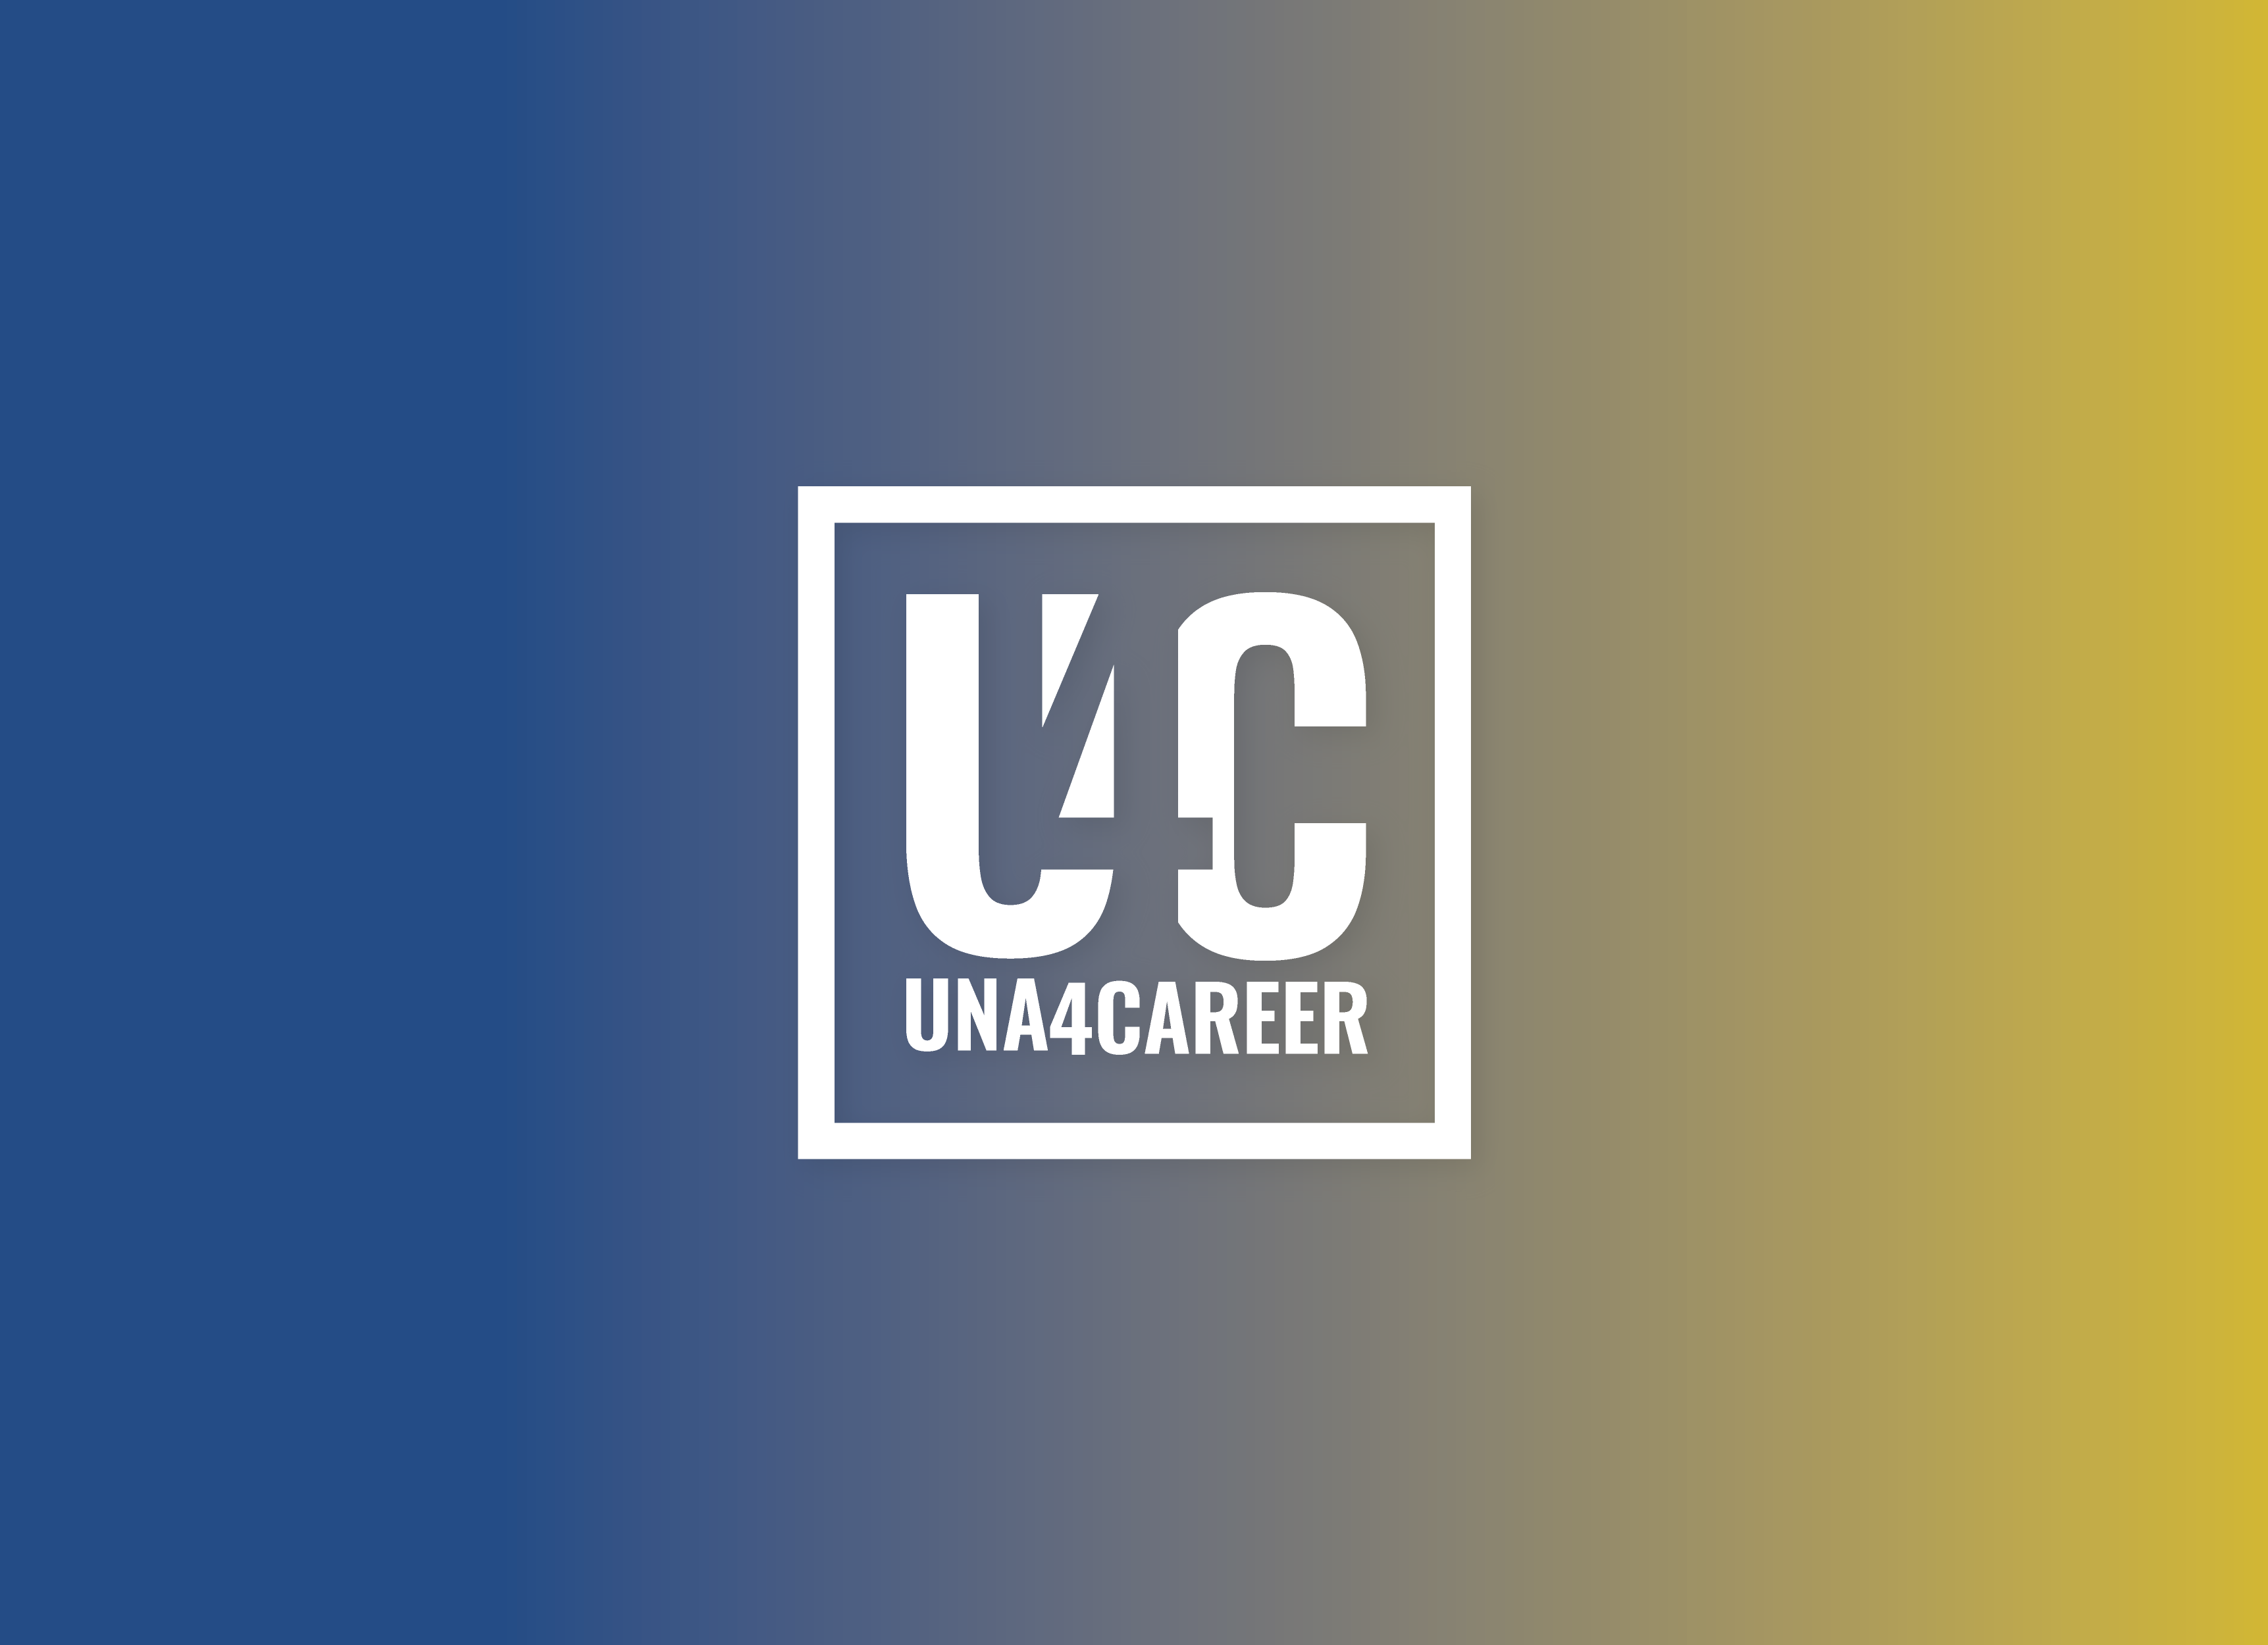 The Complutense University of Madrid launched the first call for the postdoctoral recruitment programme UNA4CAREER